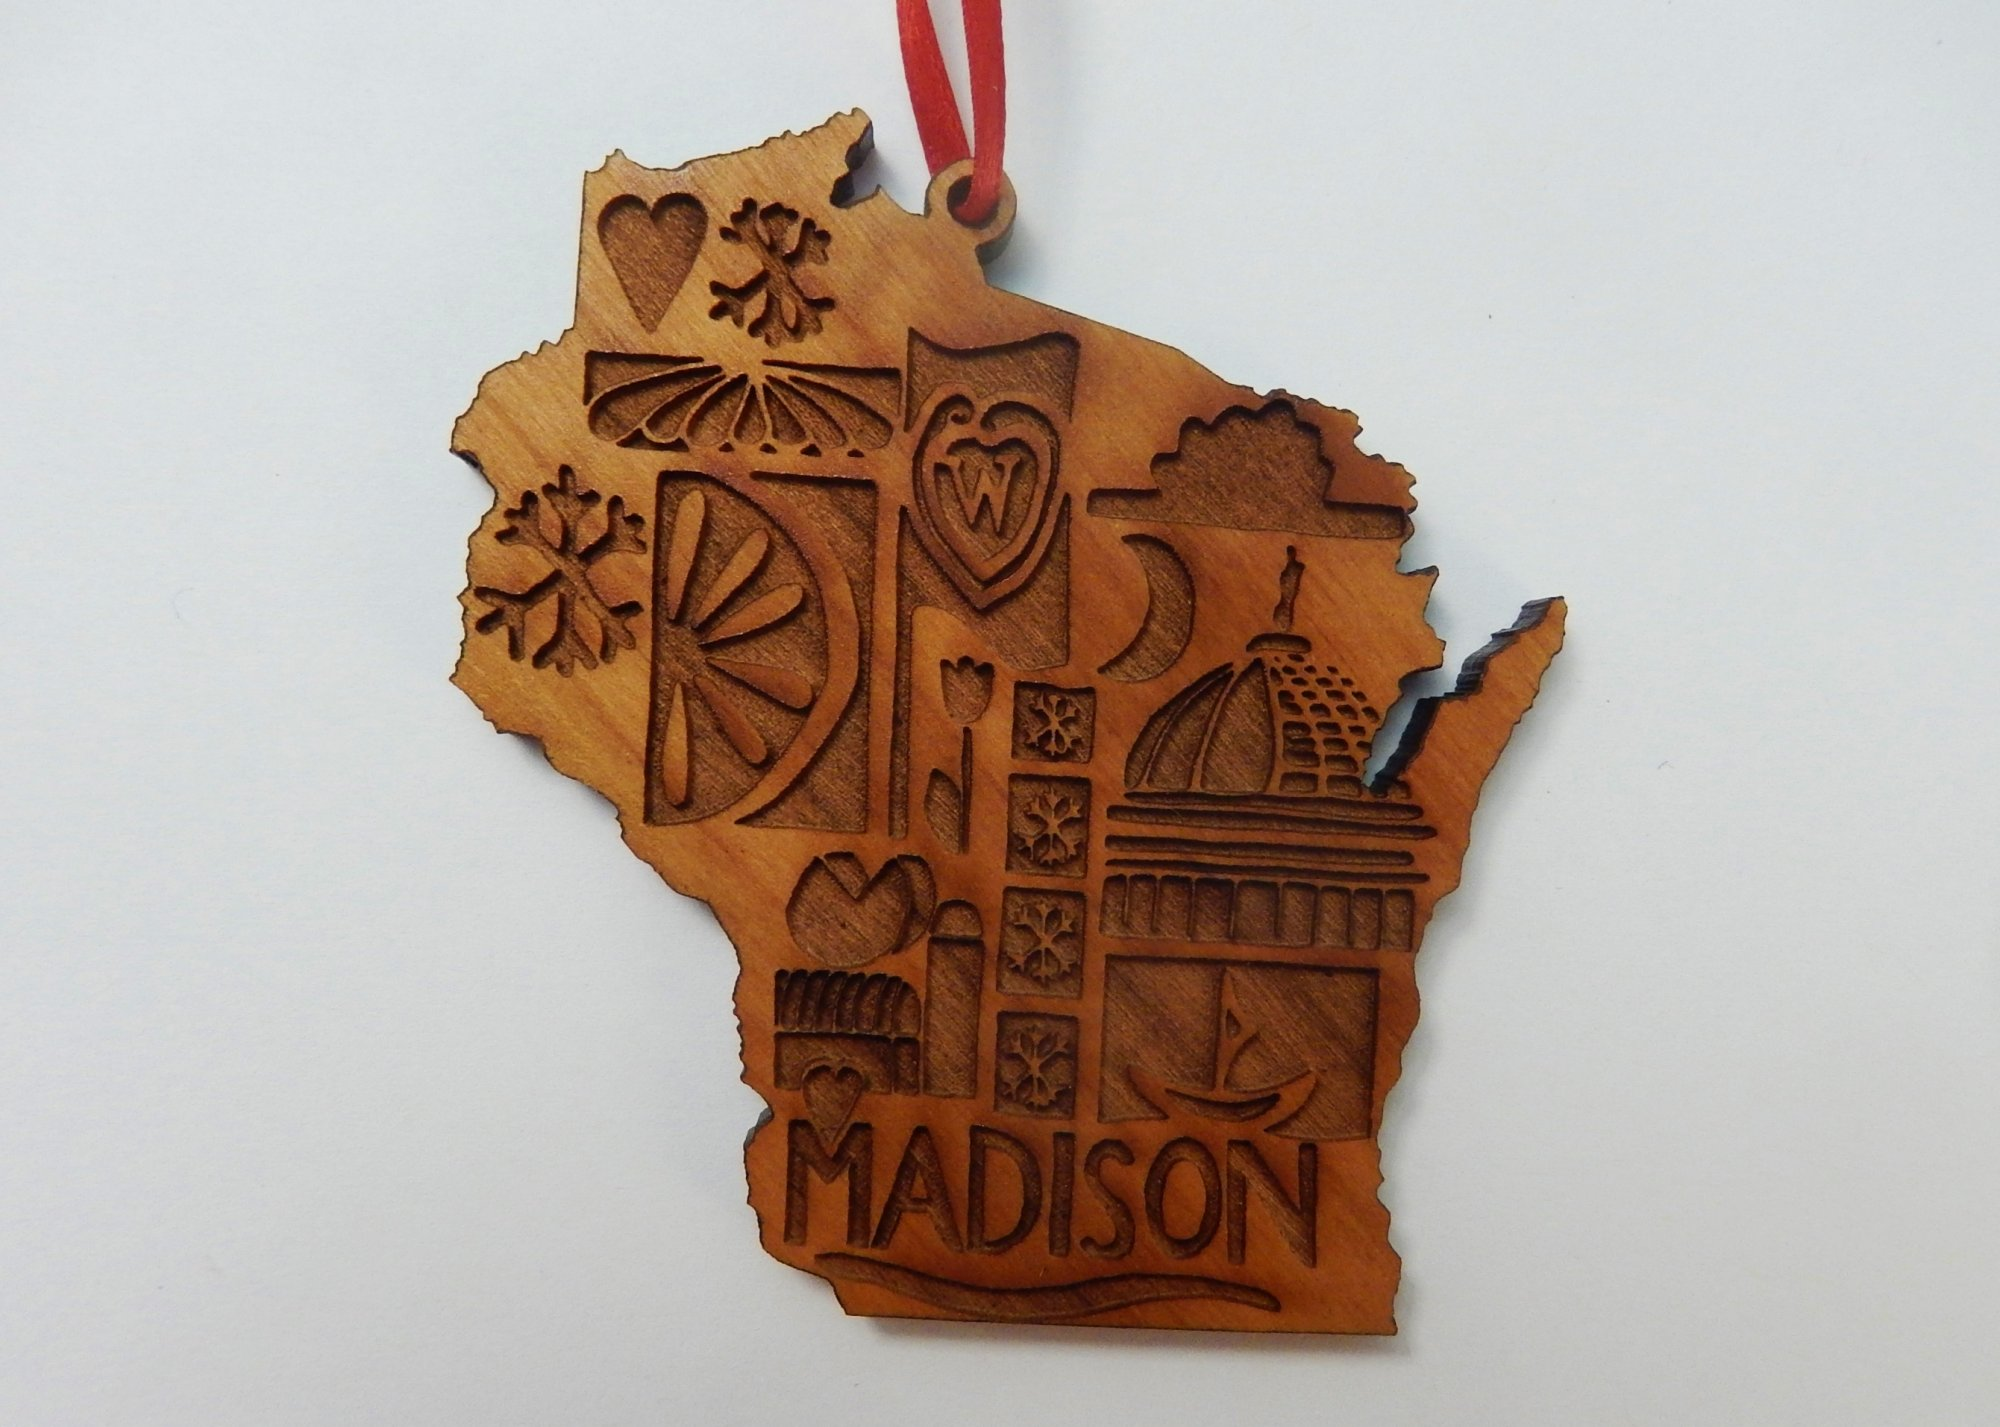 Madison patchwork ornament